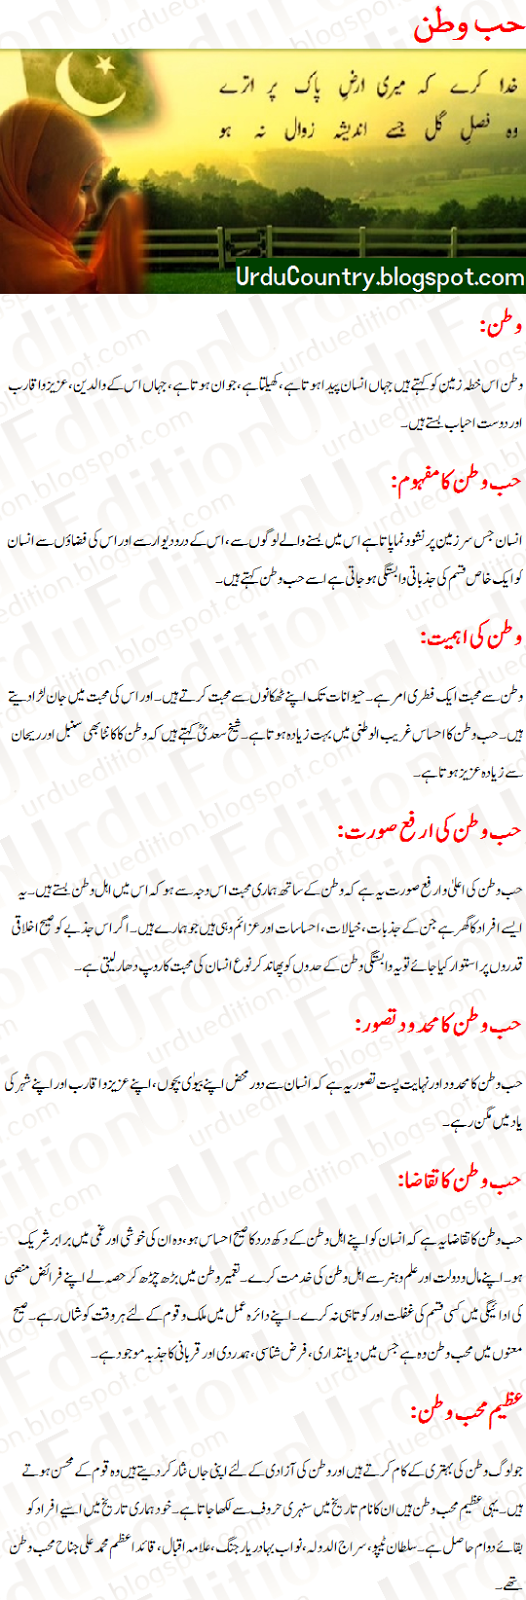 short essay my mother in urdu I will go to paradise by telling this to angel that i am searching the foot-sign of my mother dear friend, actually the name mother is of sacrifice essay on my mother in english and urdu | ( میری م a memorable evening essay short essay 2 students 2 women empowerment 2 acid.